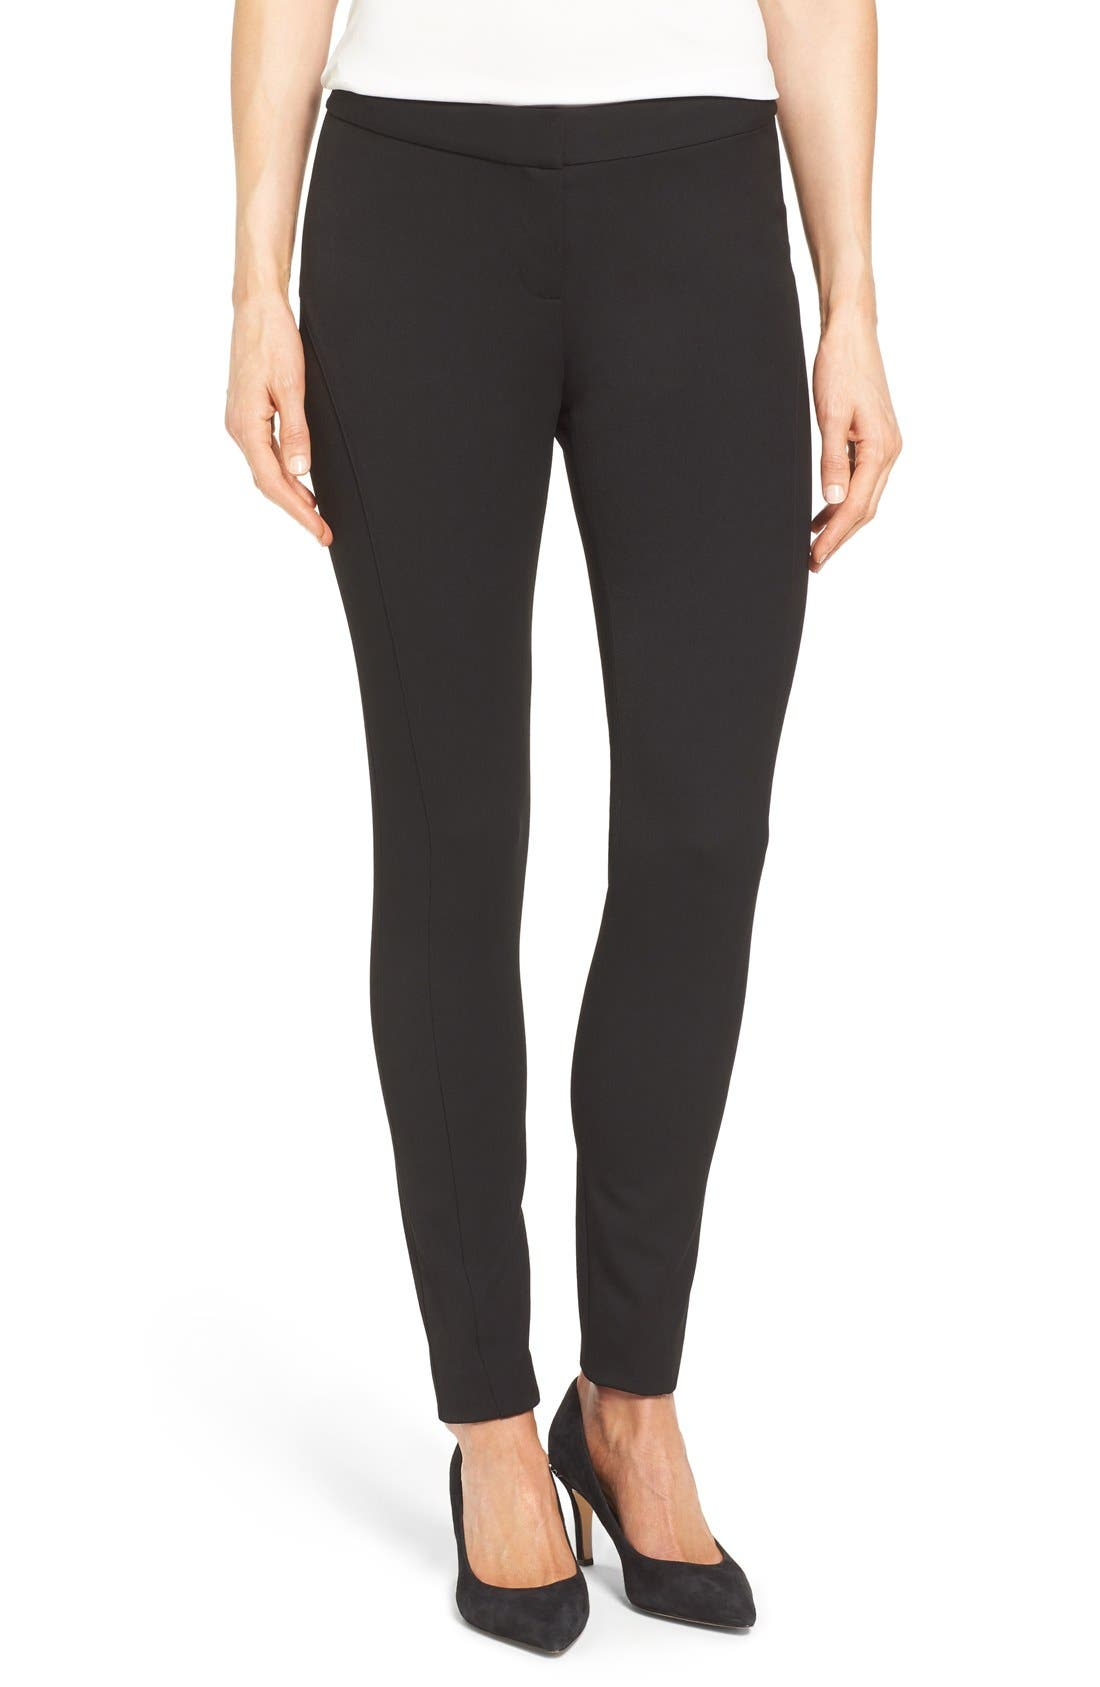 Alternate Image 1 Selected - Vince Camuto Stretch Twill Skinny Pants (Regular & Petite)